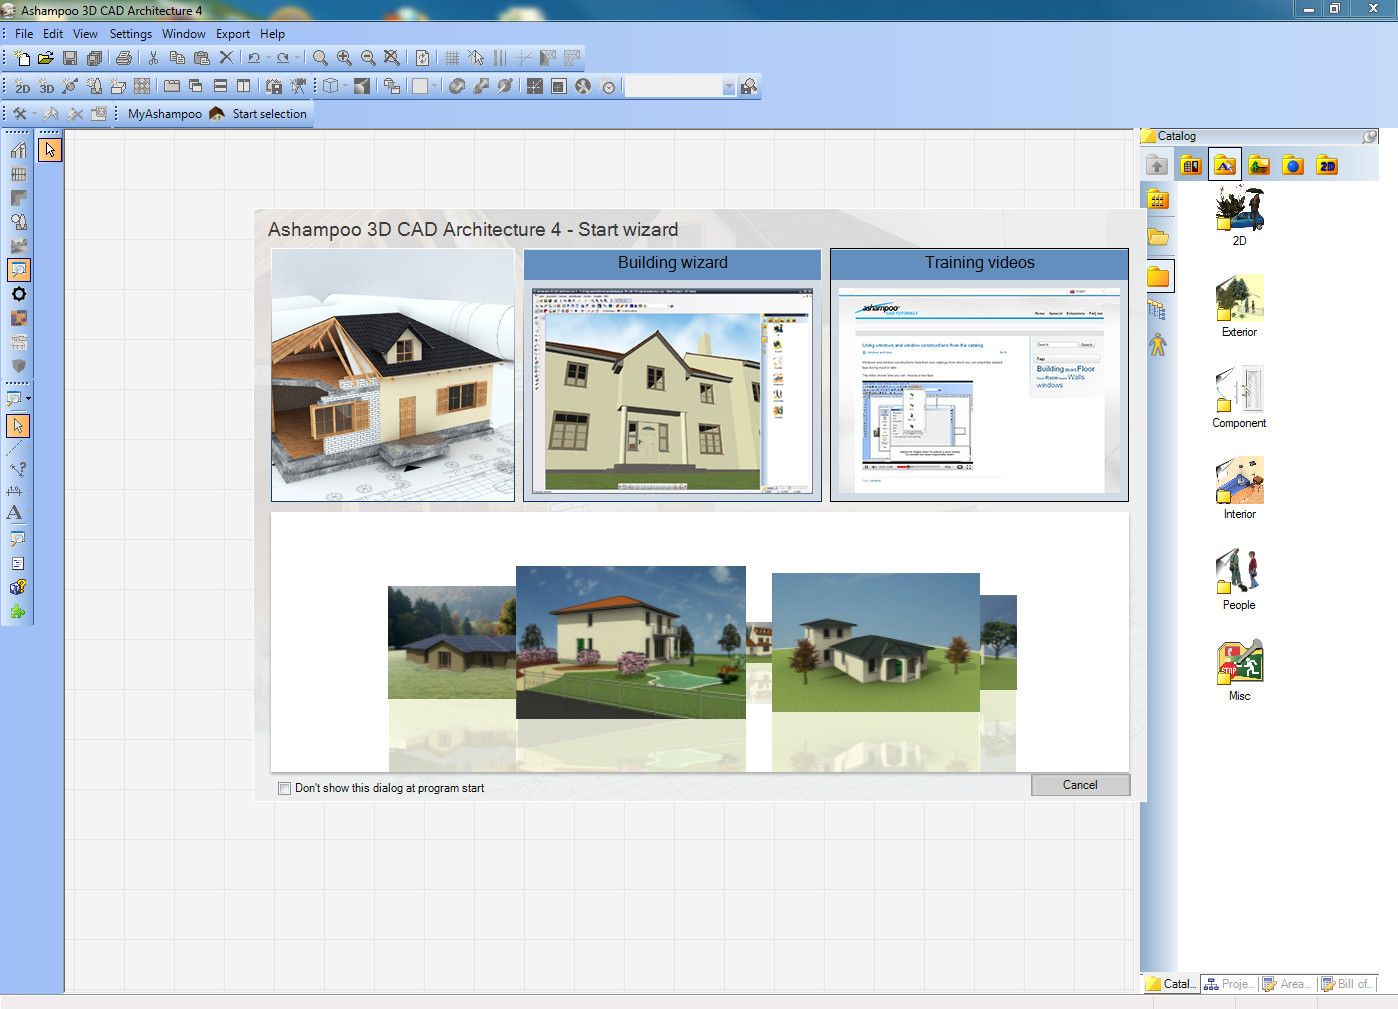 New Ashampoo 3d Cad Architecture 4 Best Software 4: 3d cad software